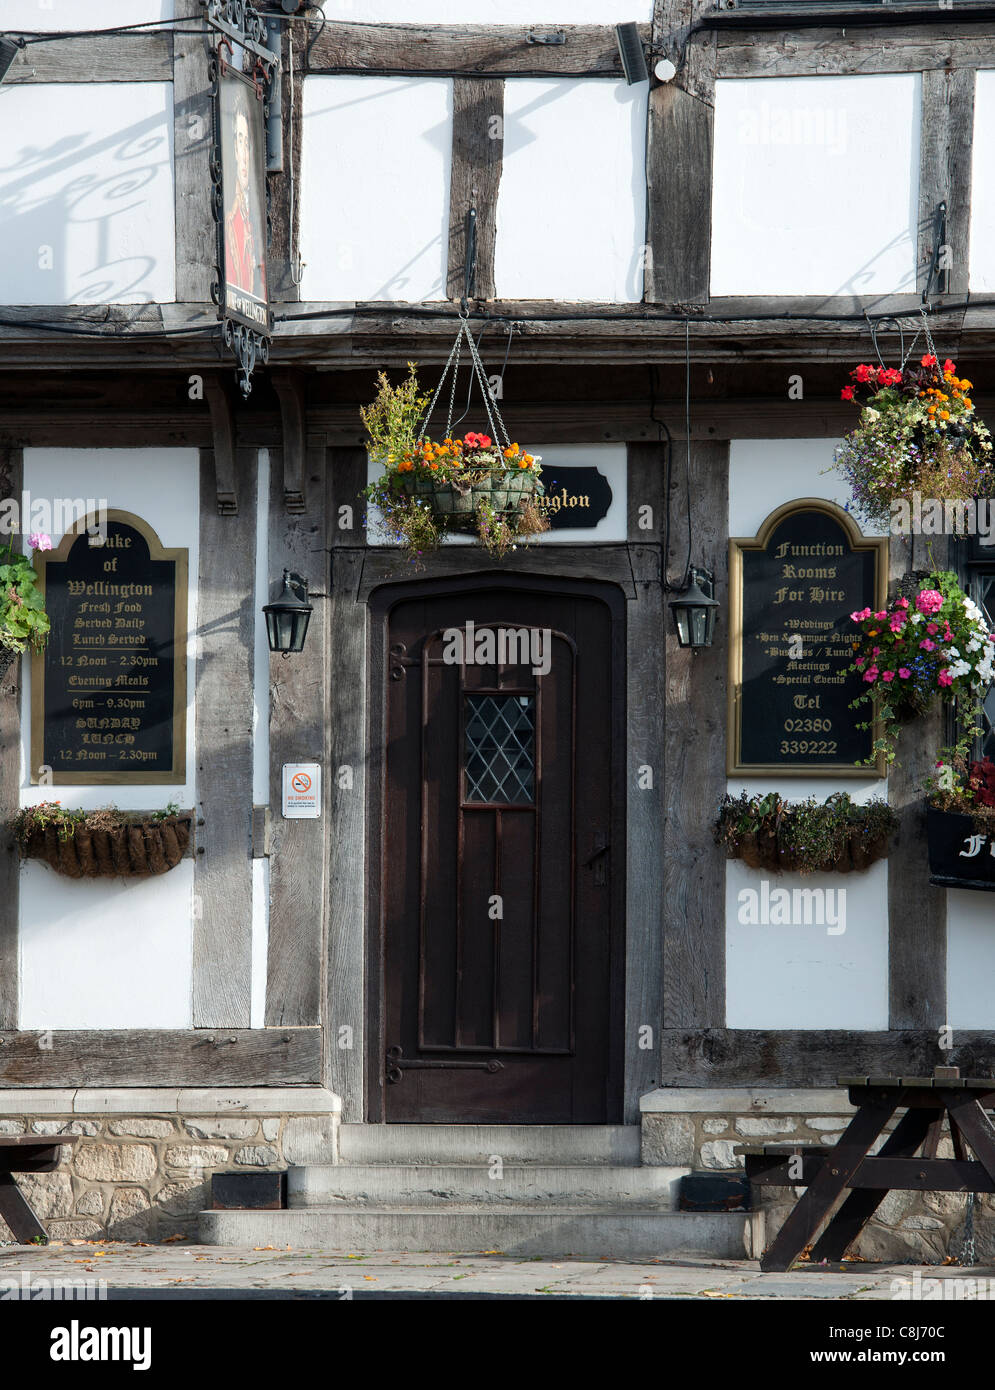 Entrance to the Duke of Wellington Public House, Bugle Street, Southampton, Hampshire, England, UK. - Stock Image